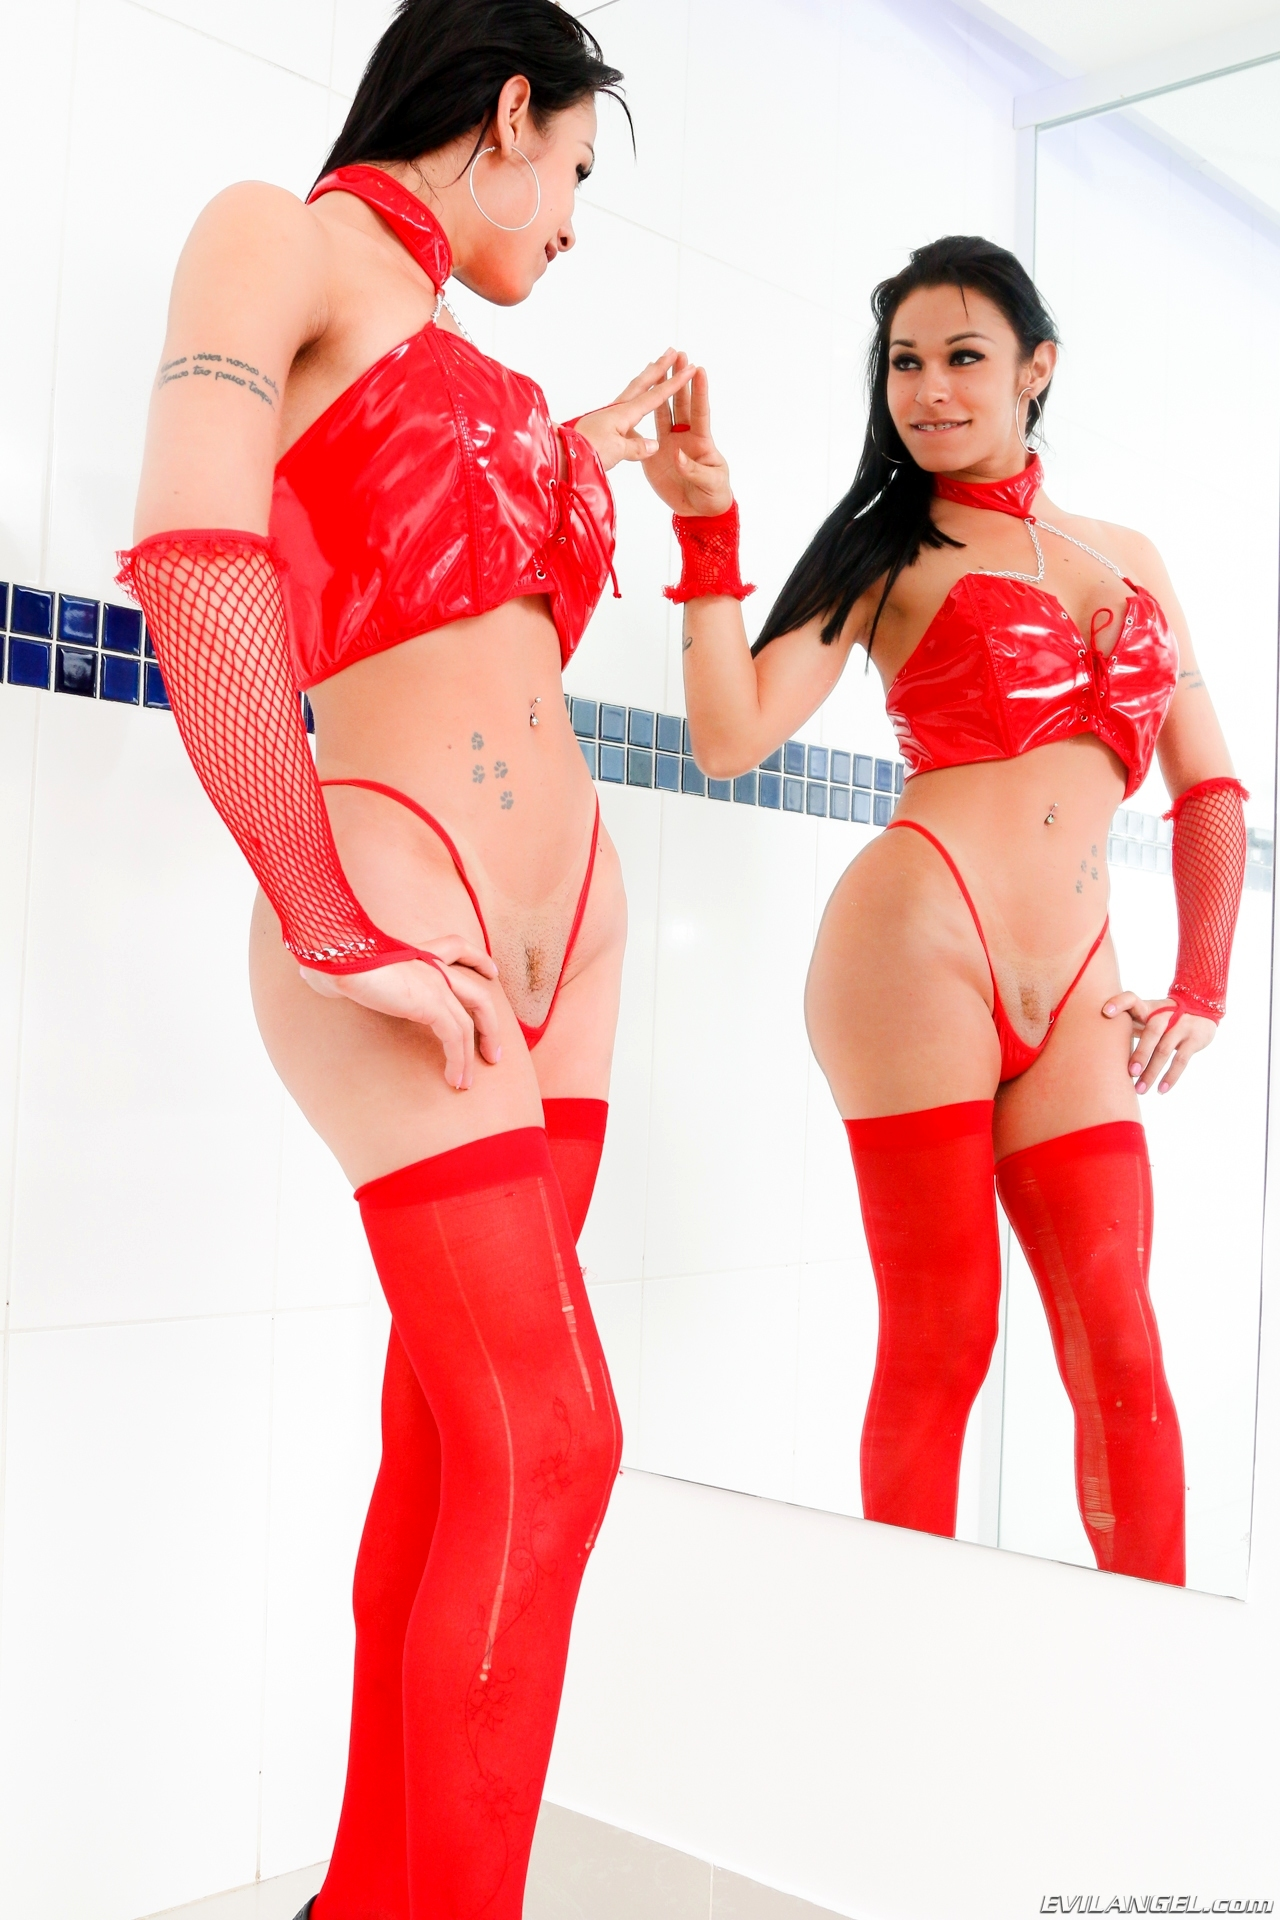 nicoly lopes in steamy red latex panties